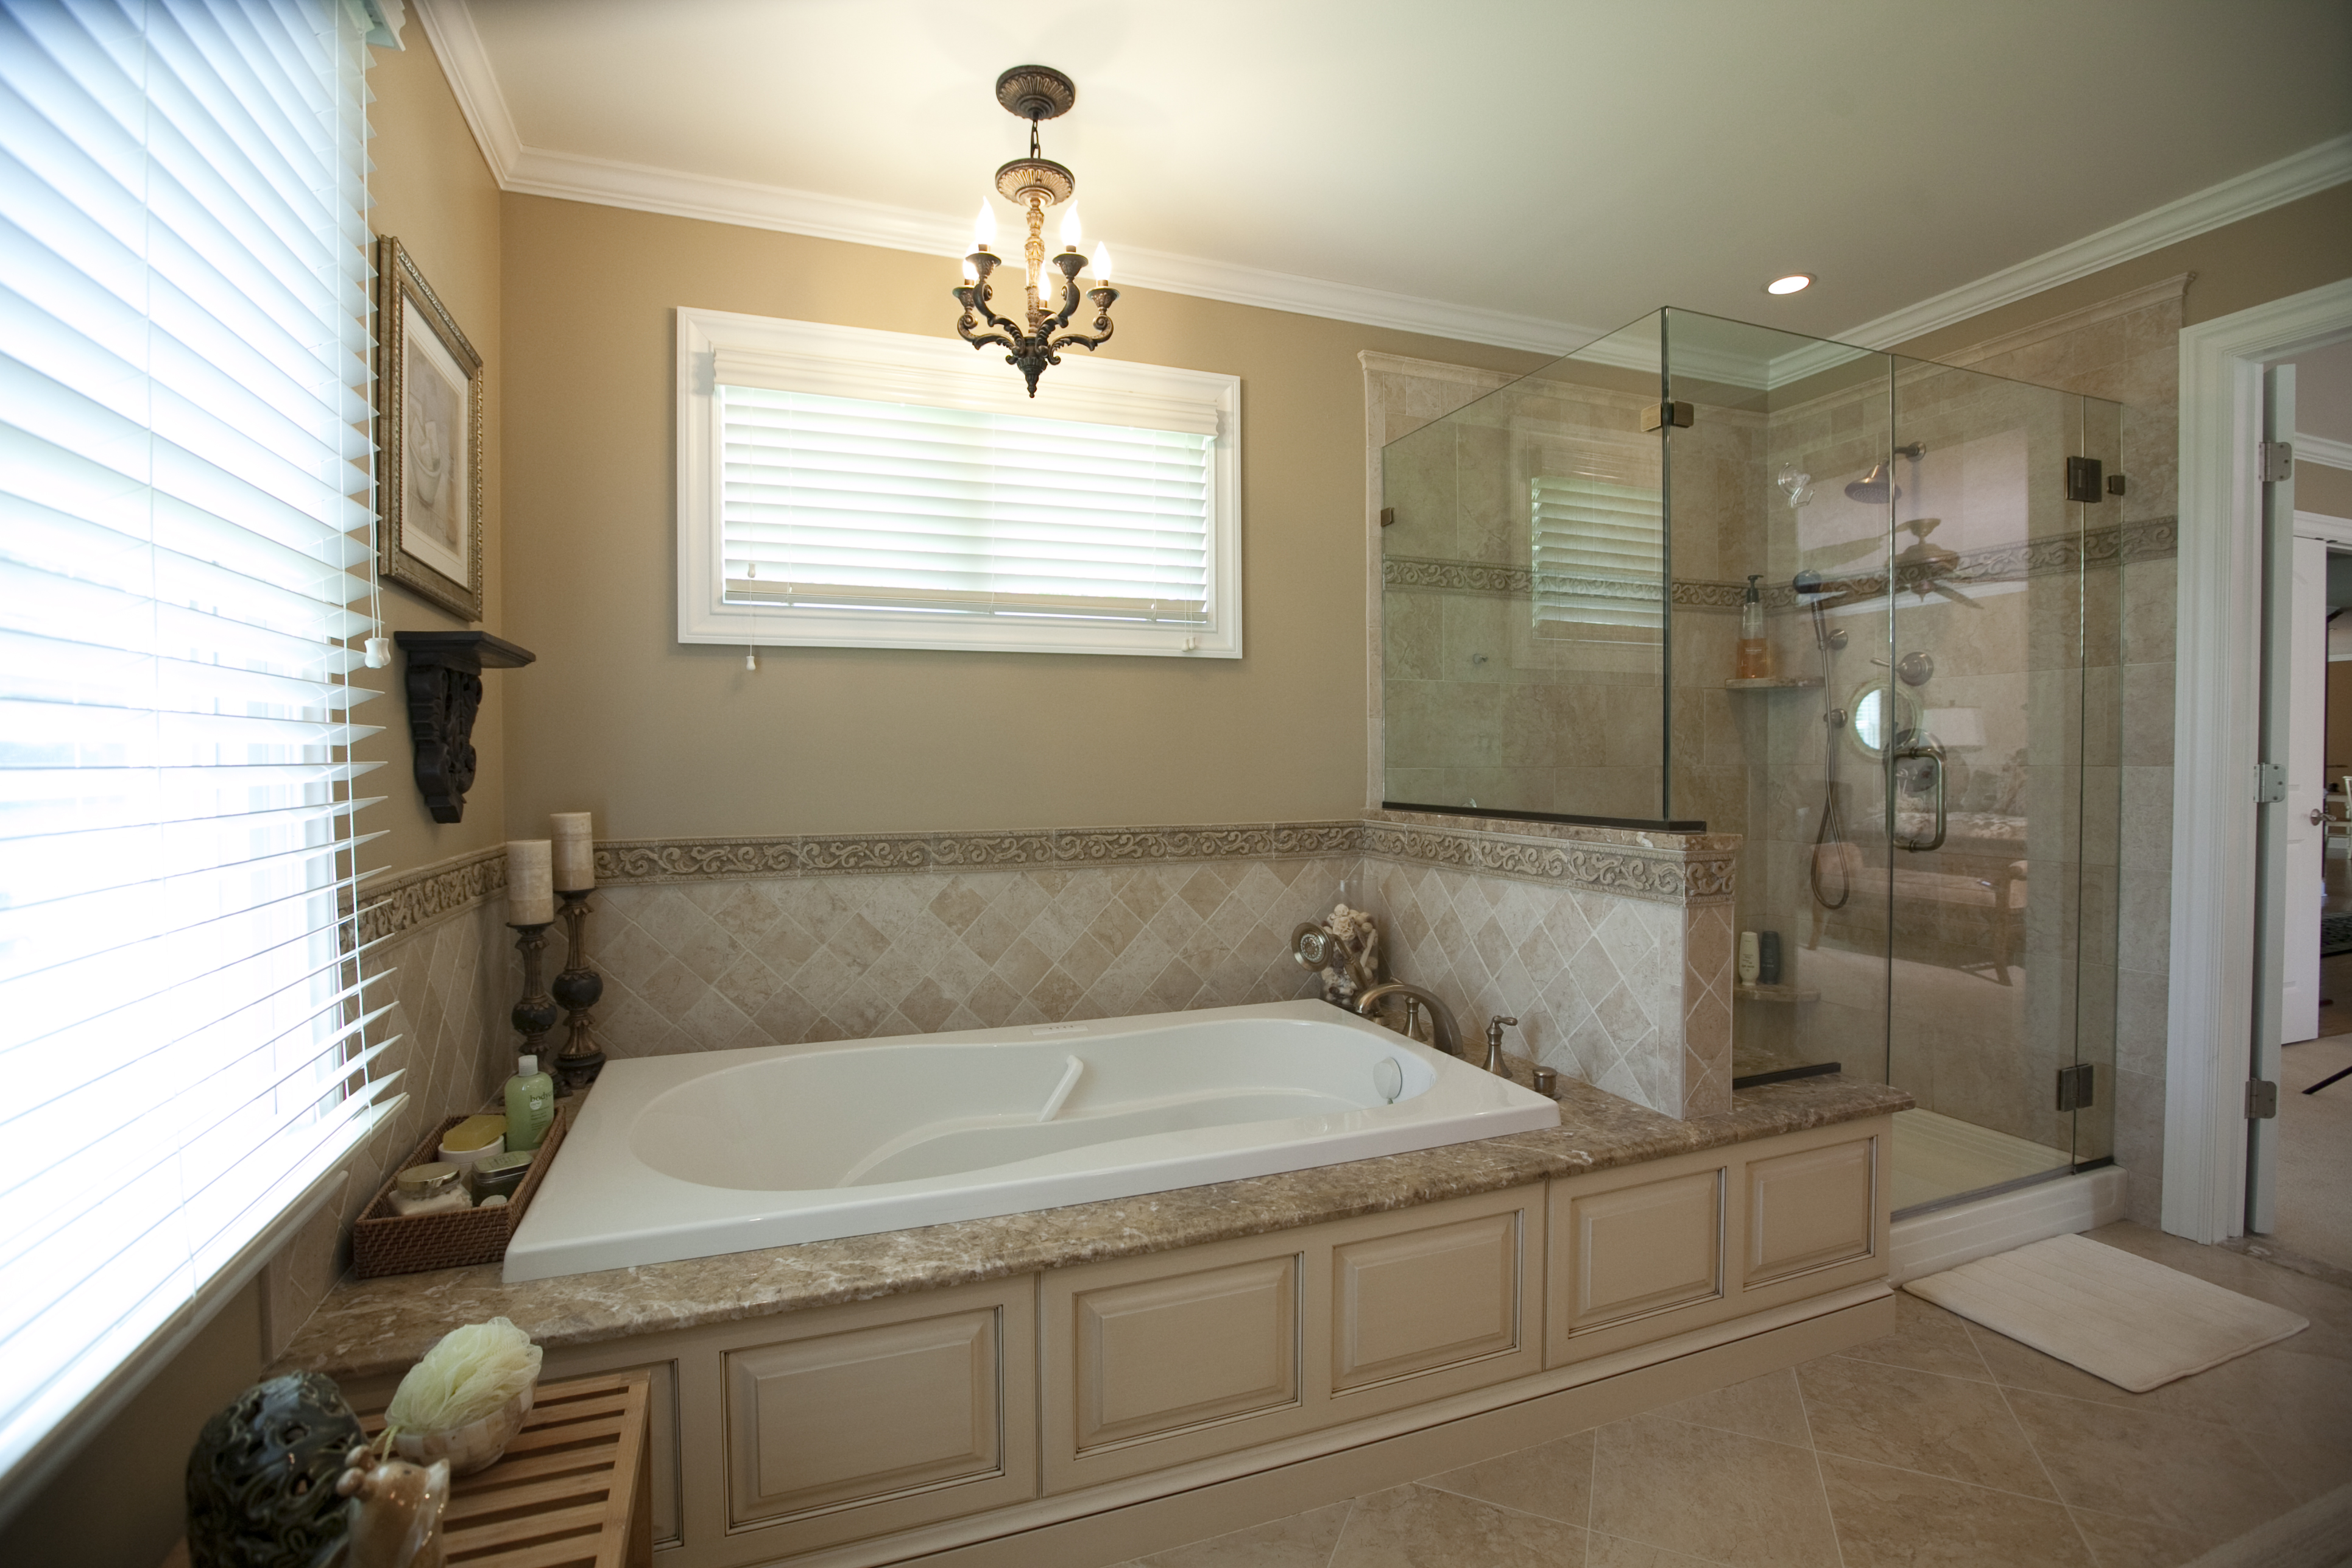 Custom Showers Design Line Kitchens In Sea Girt NJ - Custom showers